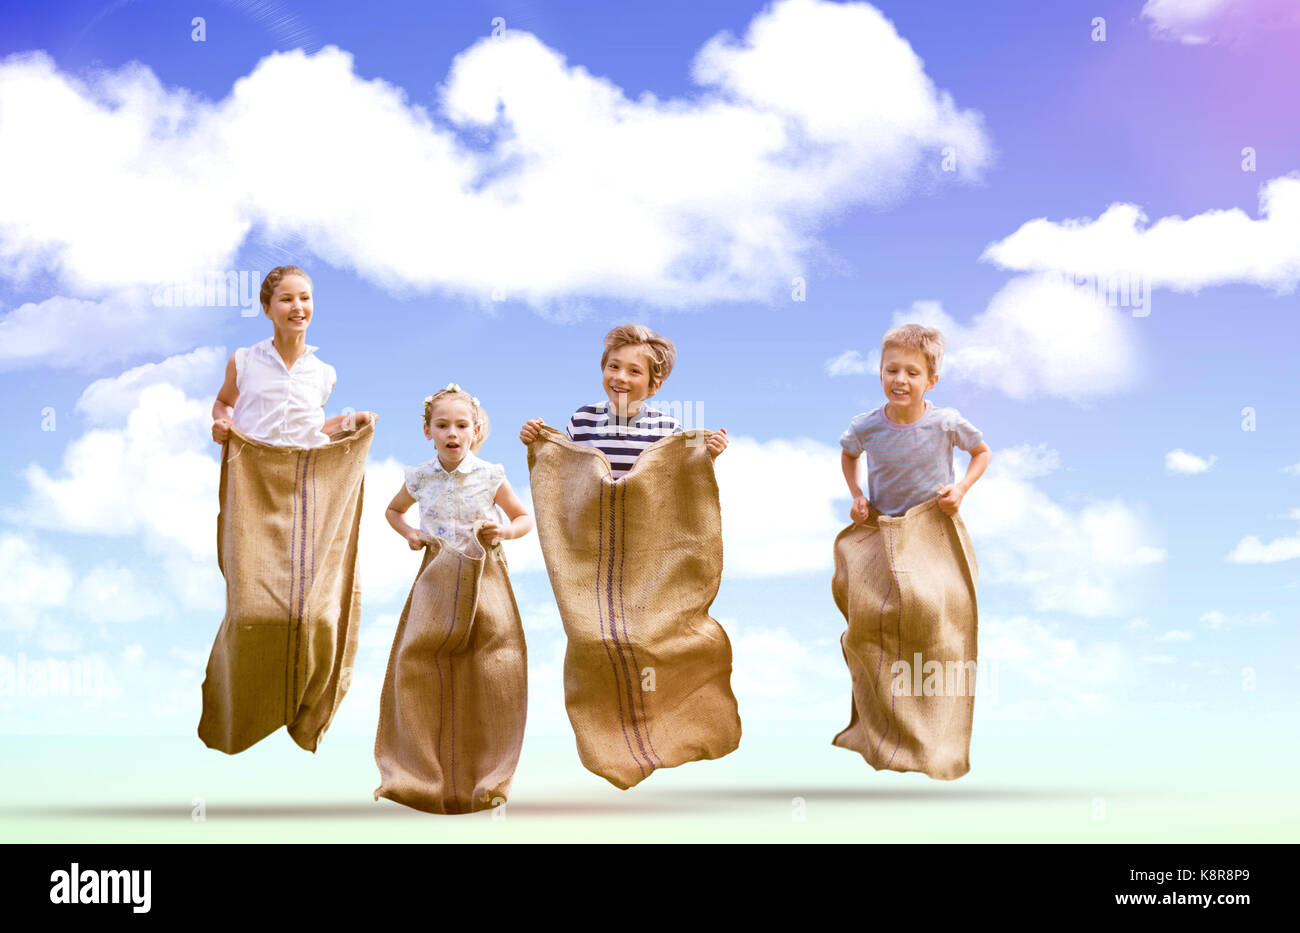 Friends playing sack race against blue sky - Stock Image